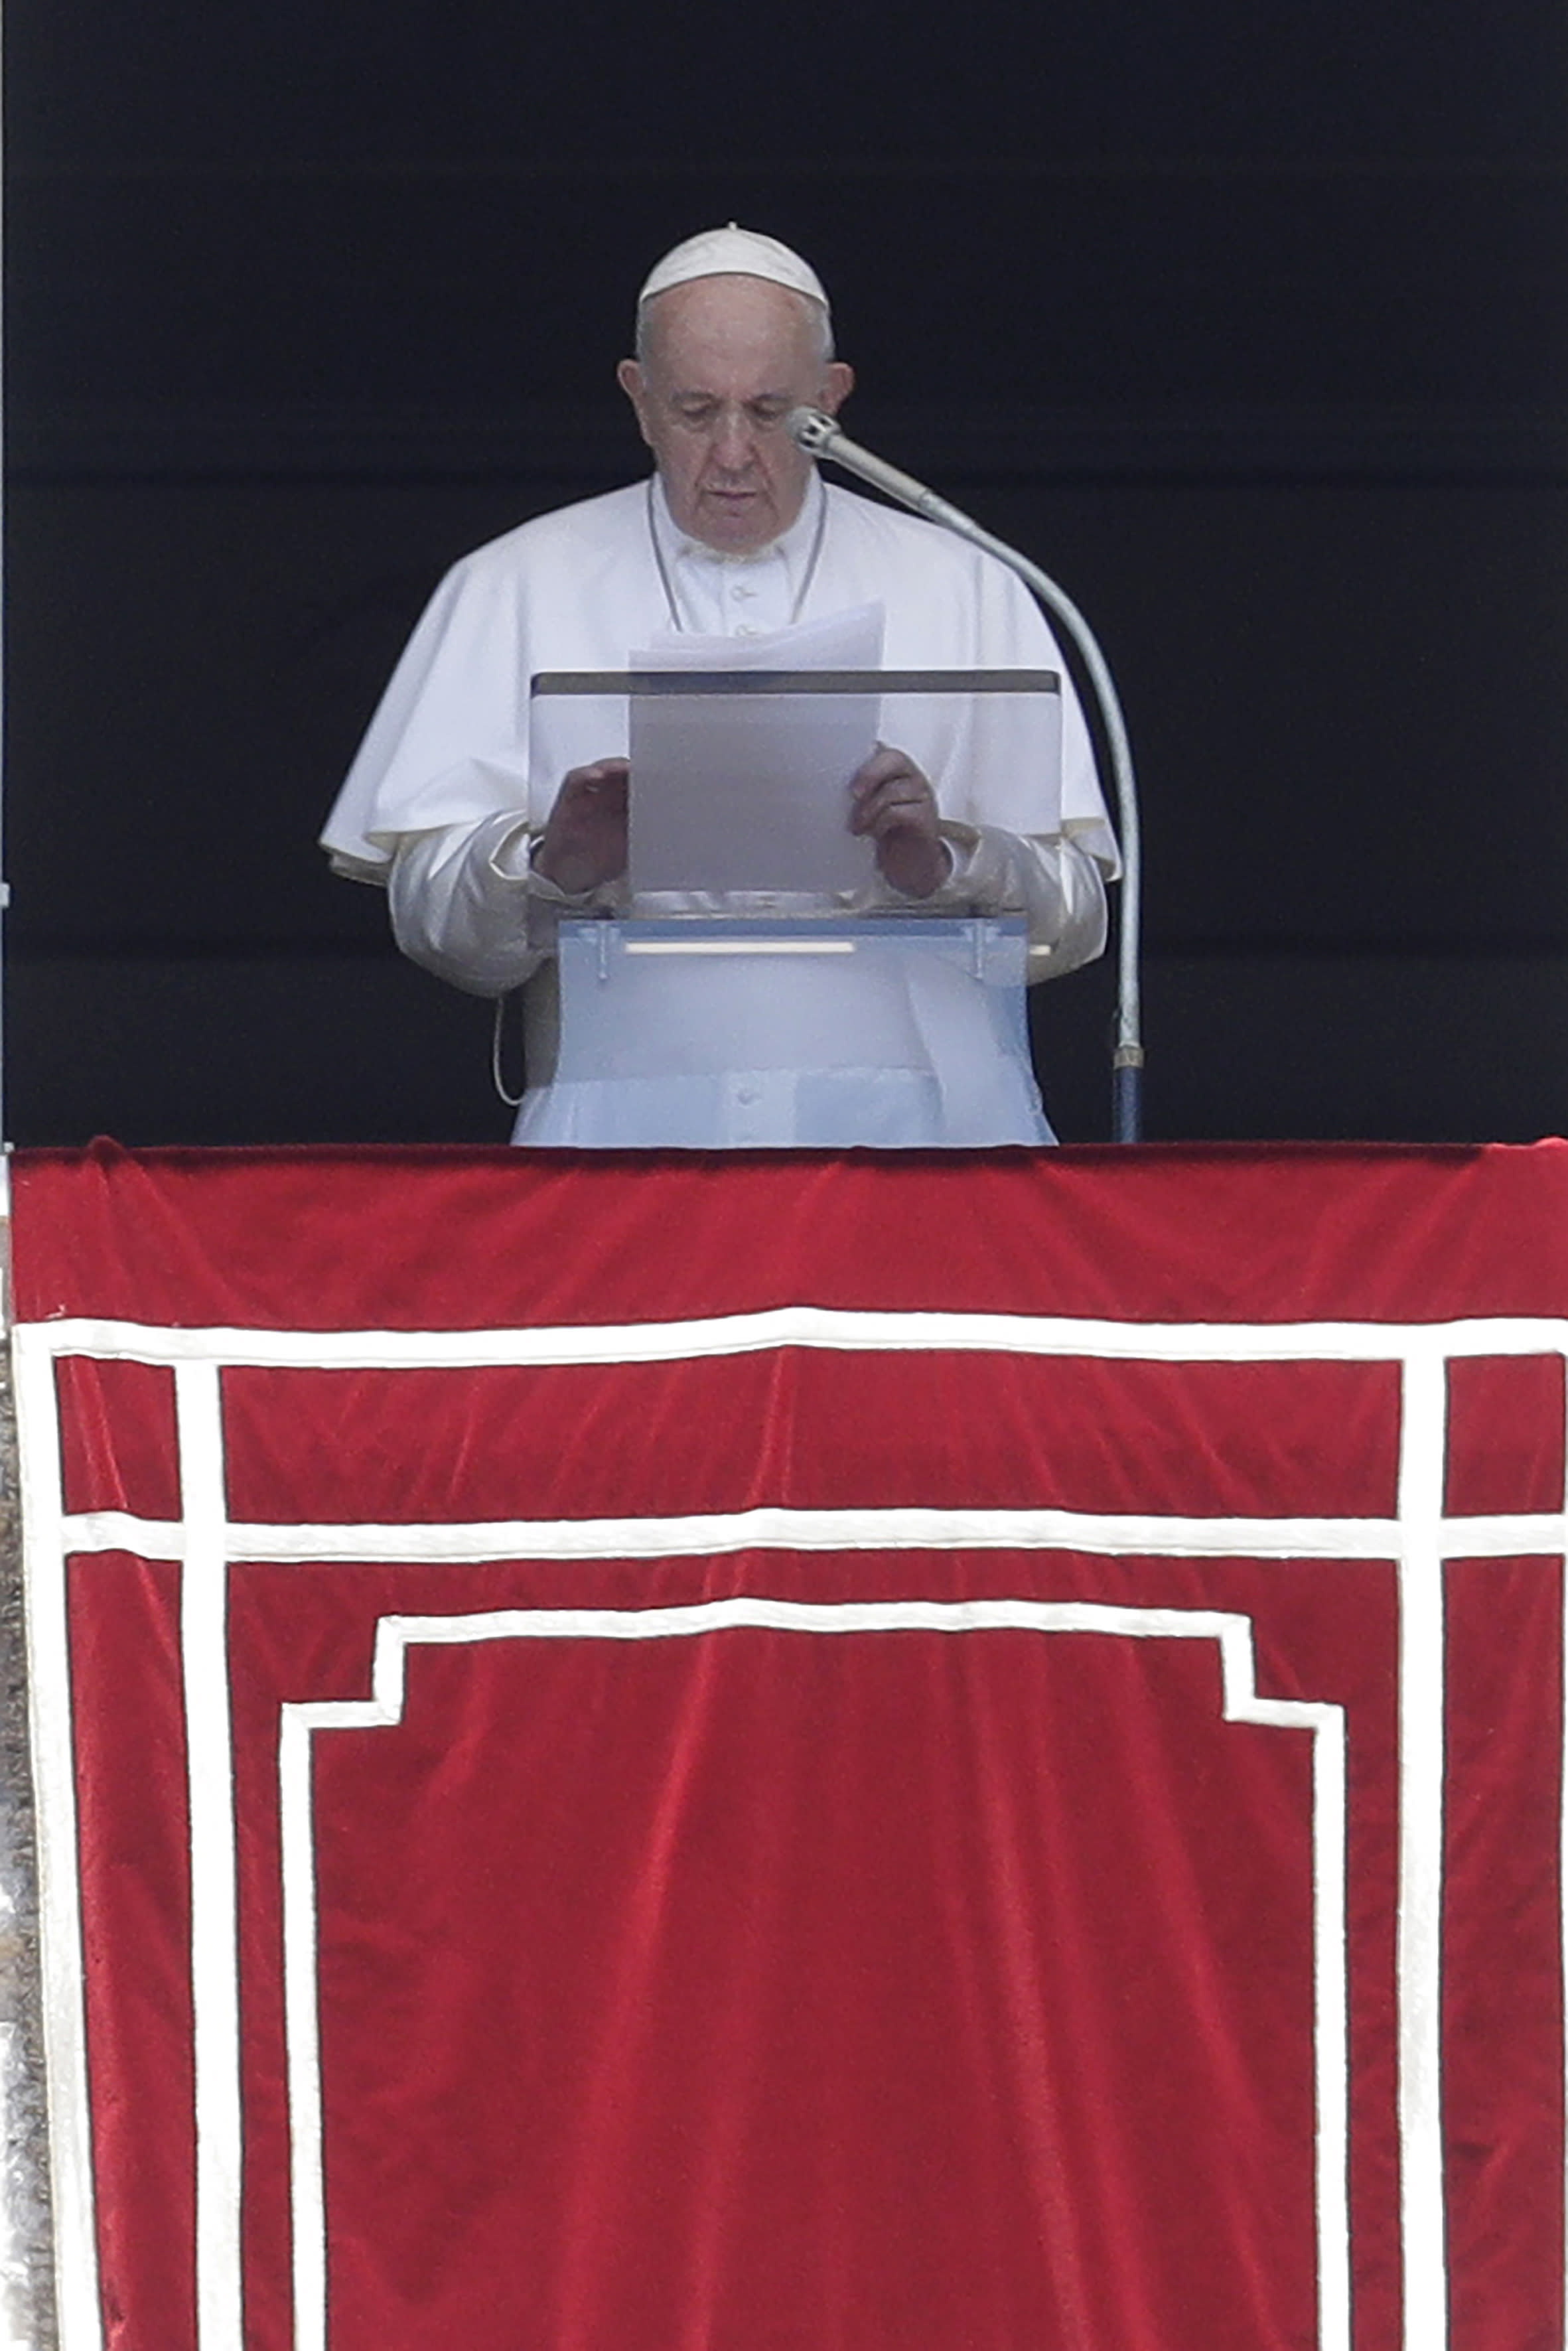 Pope Francis prays for the dead and injured of the three U.S. mass shootings, during the Angelus noon prayer in St. Peter's Square at the Vatican, Sunday, Aug. 4, 2019. Francis told a crowd gathered in St. Peter's Square for the weekly Angelus blessing Sunday that ''I am spiritually close to the victims of the episodes of violence that have bloodied Texas, California and Ohio, in the United States, striking defenseless people.'' (AP Photo/Gregorio Borgia)